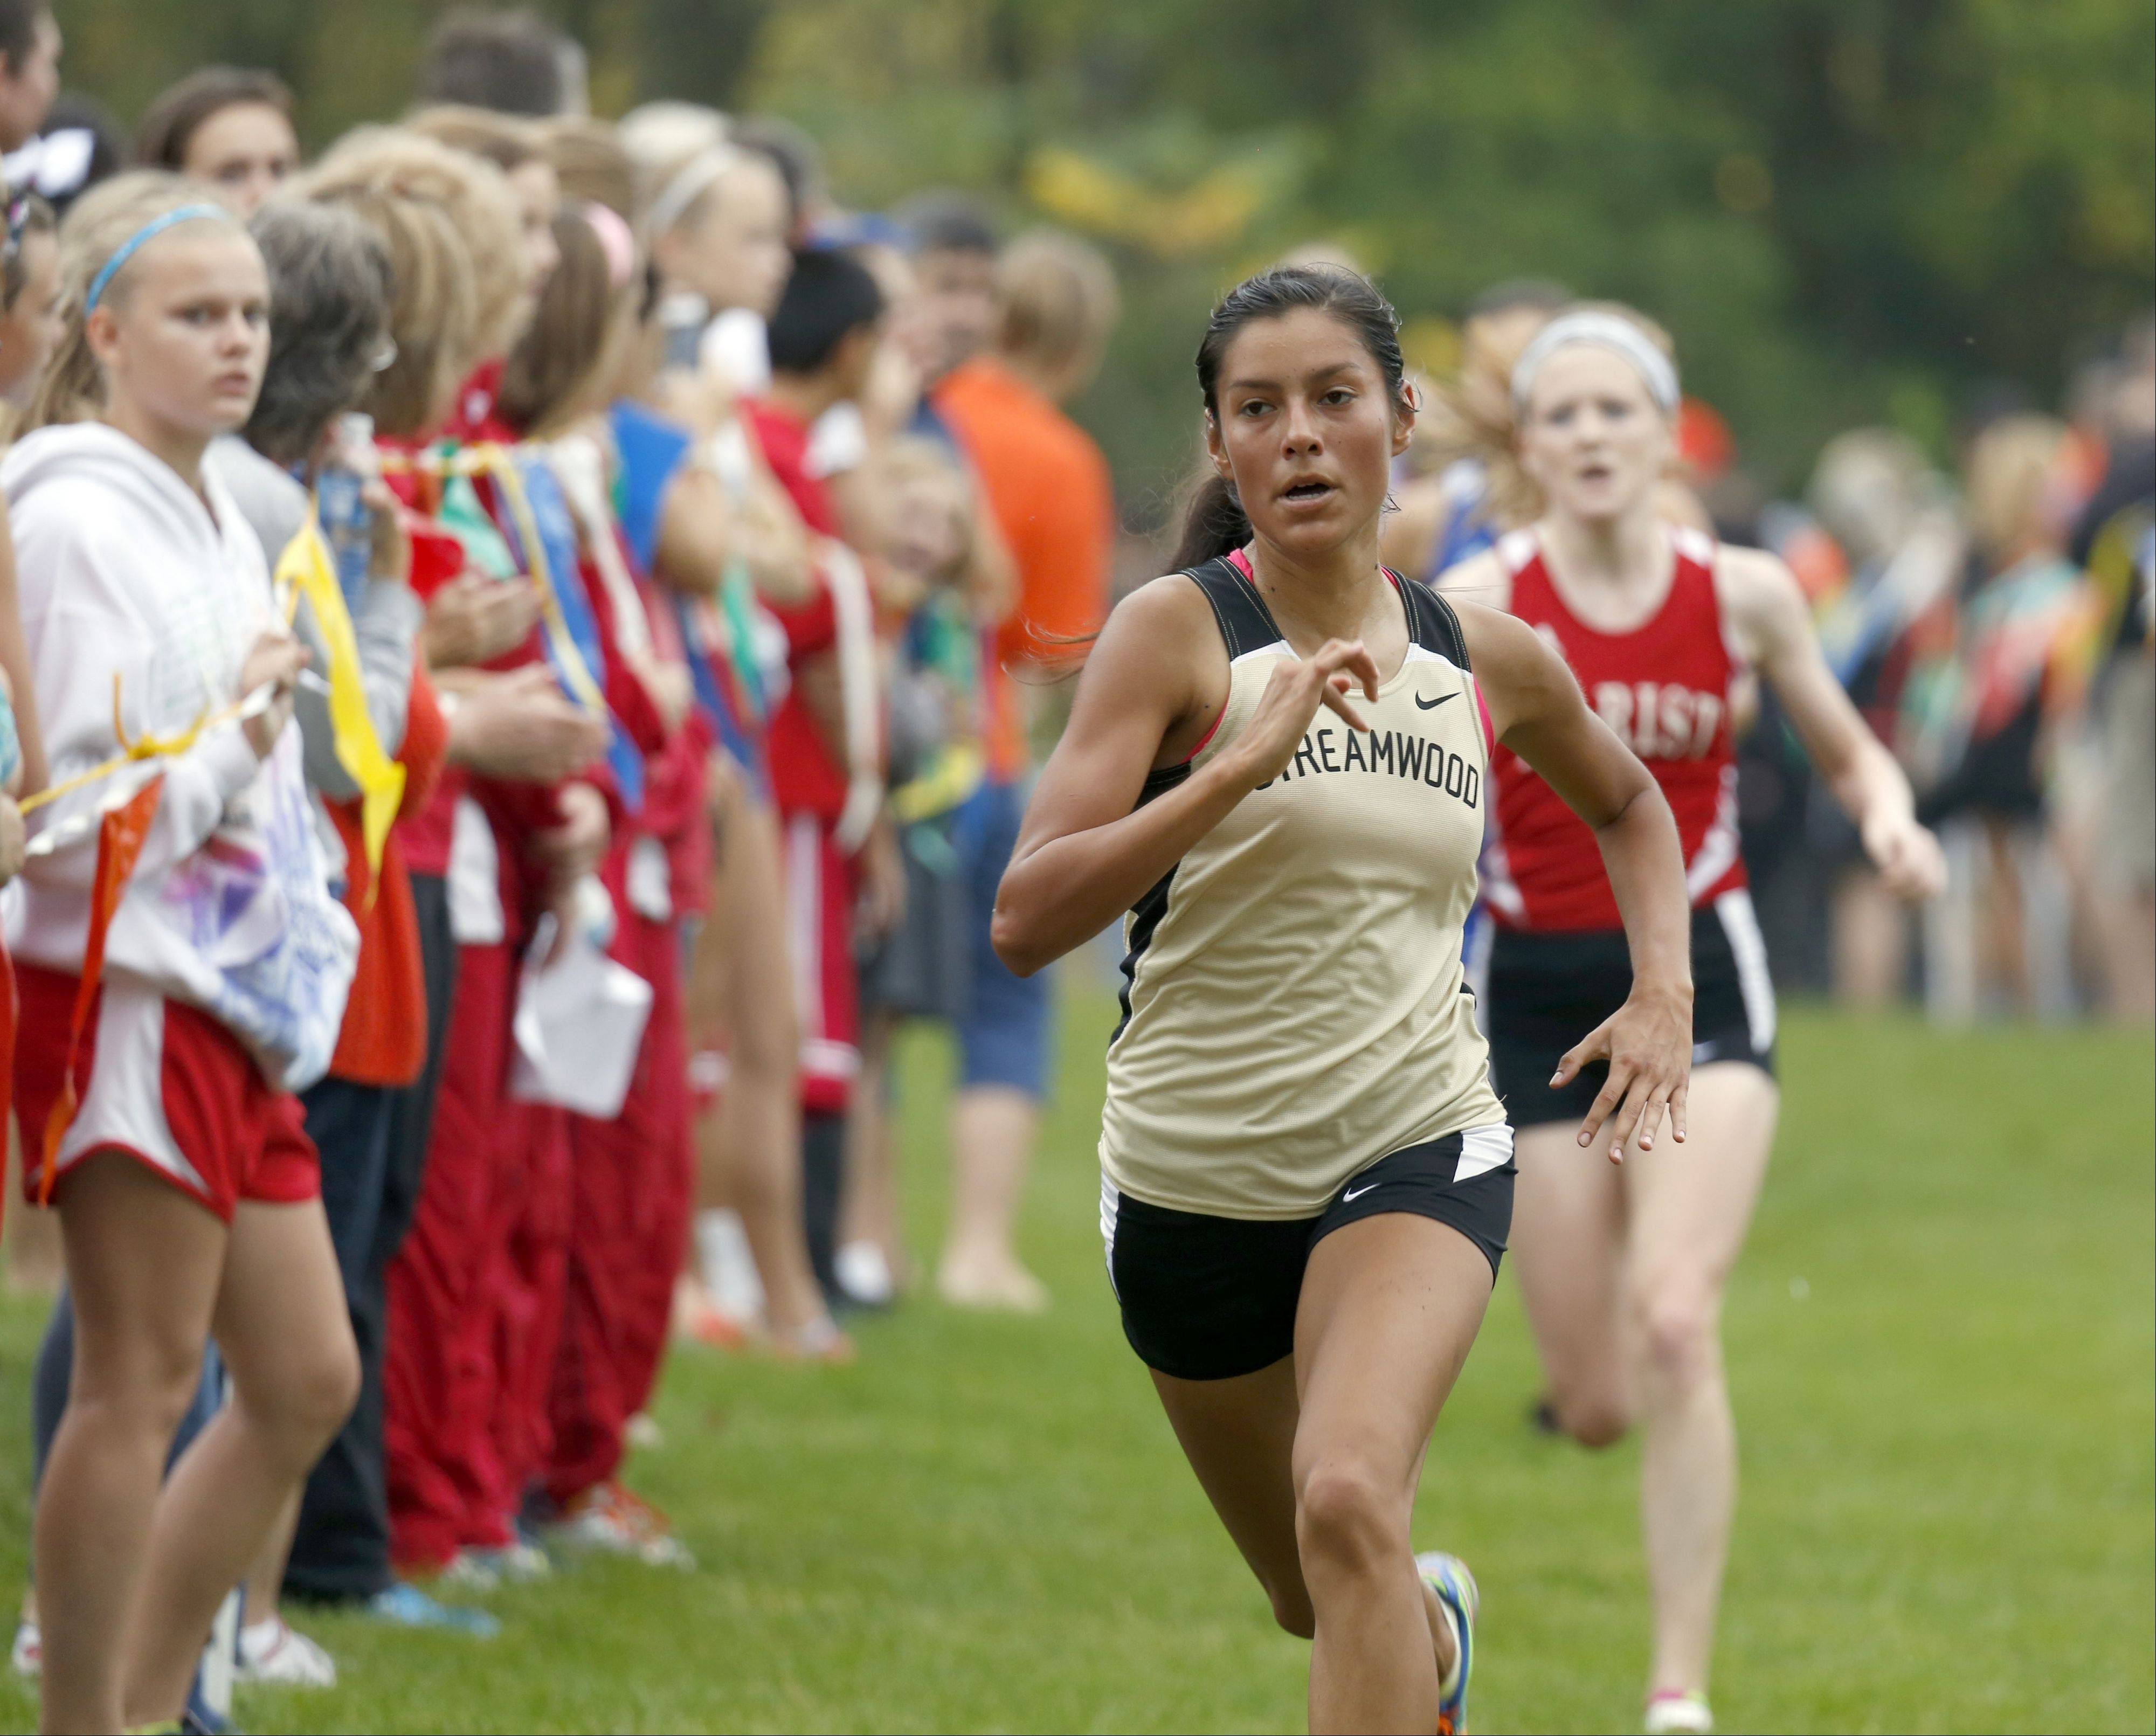 Streamwood's Gabby Juarez headed to 5th place during girls cross country at LeRoy Oakes in St. Charles Saturday.